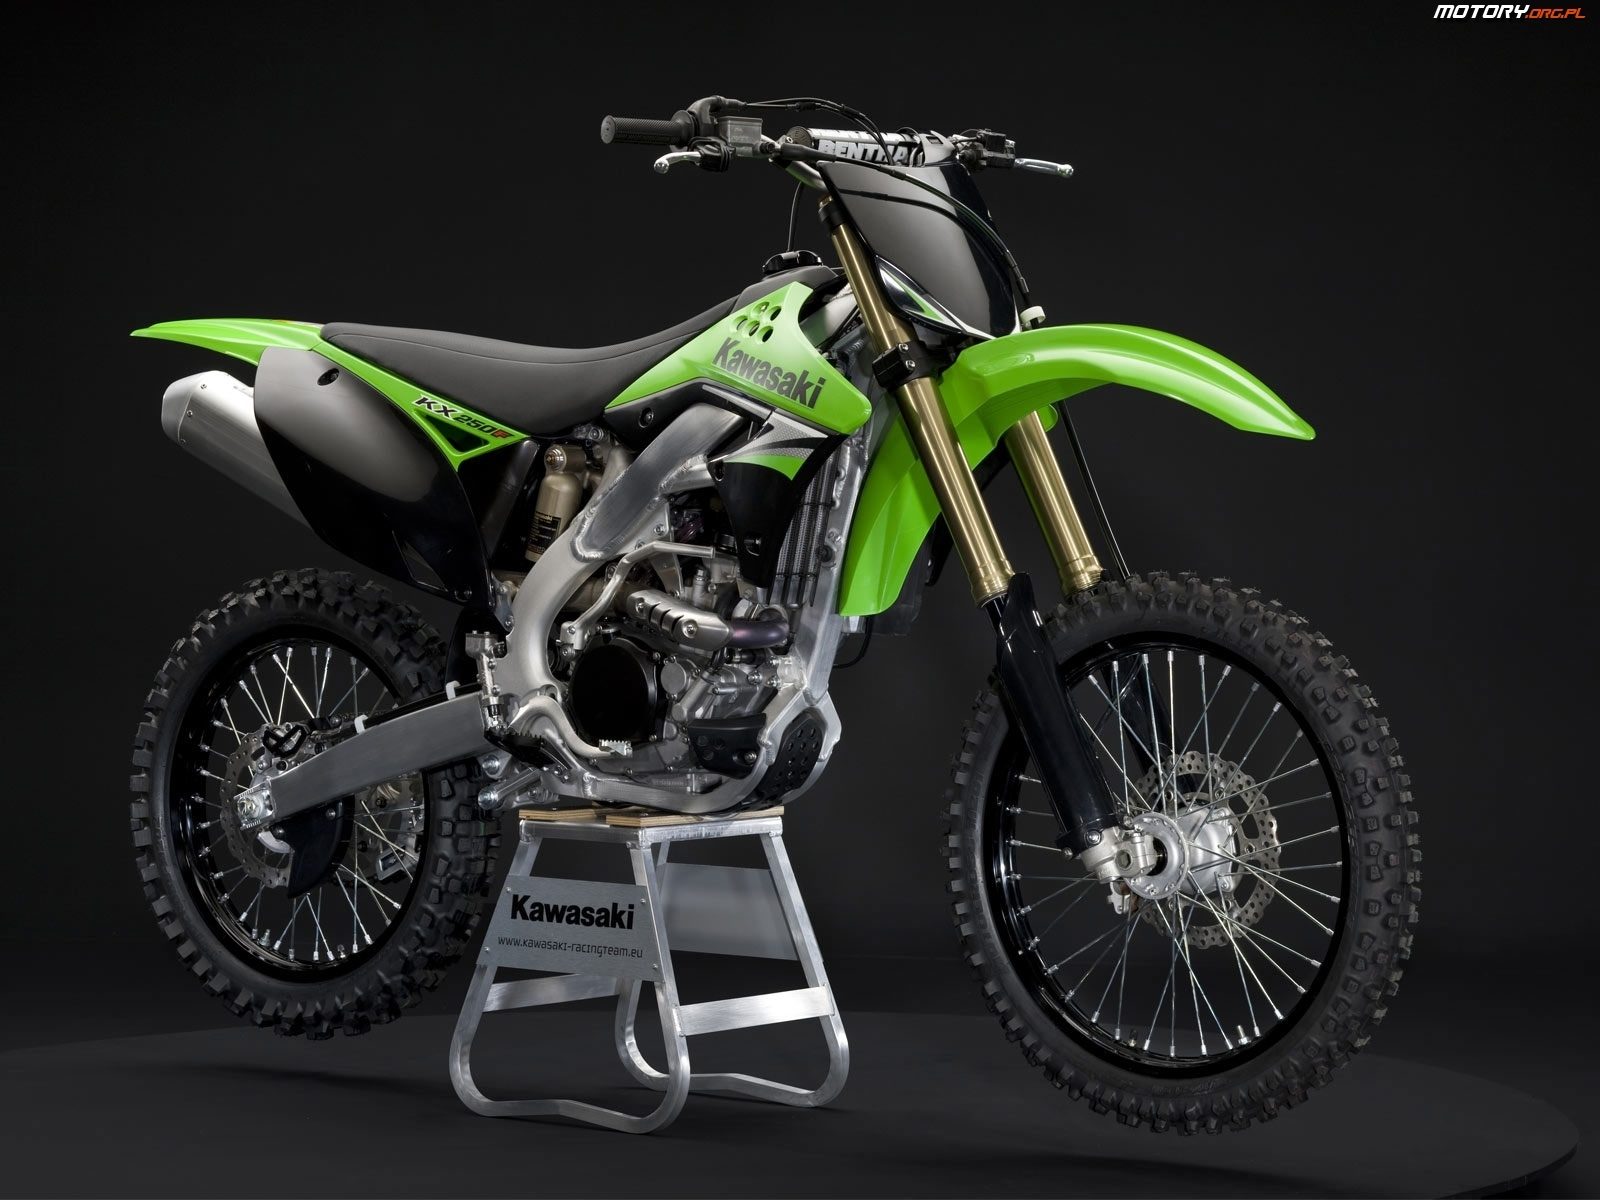 motor kawasaki kx250f cross. Black Bedroom Furniture Sets. Home Design Ideas